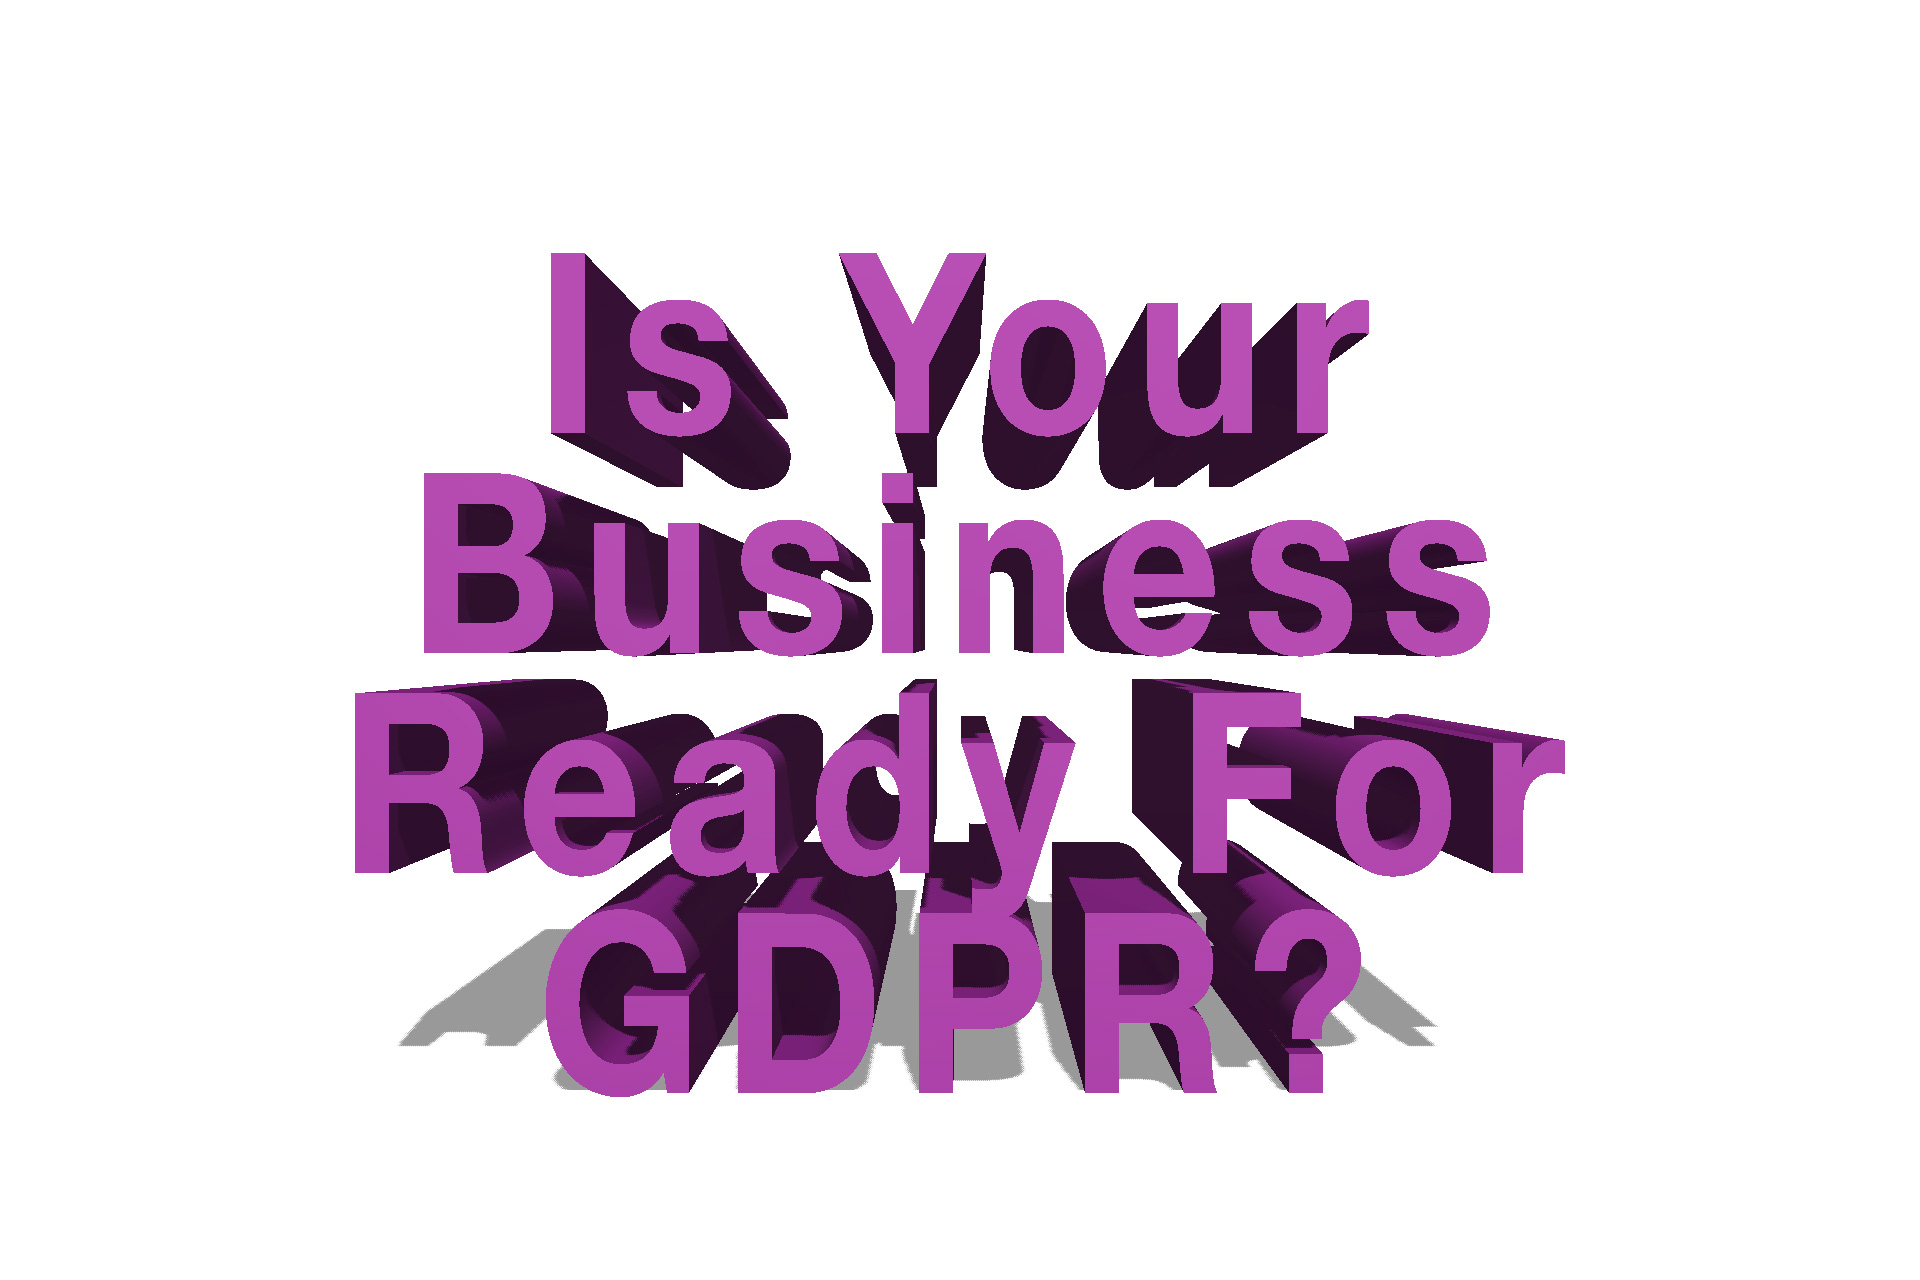 Is Your Business Ready For GDPR